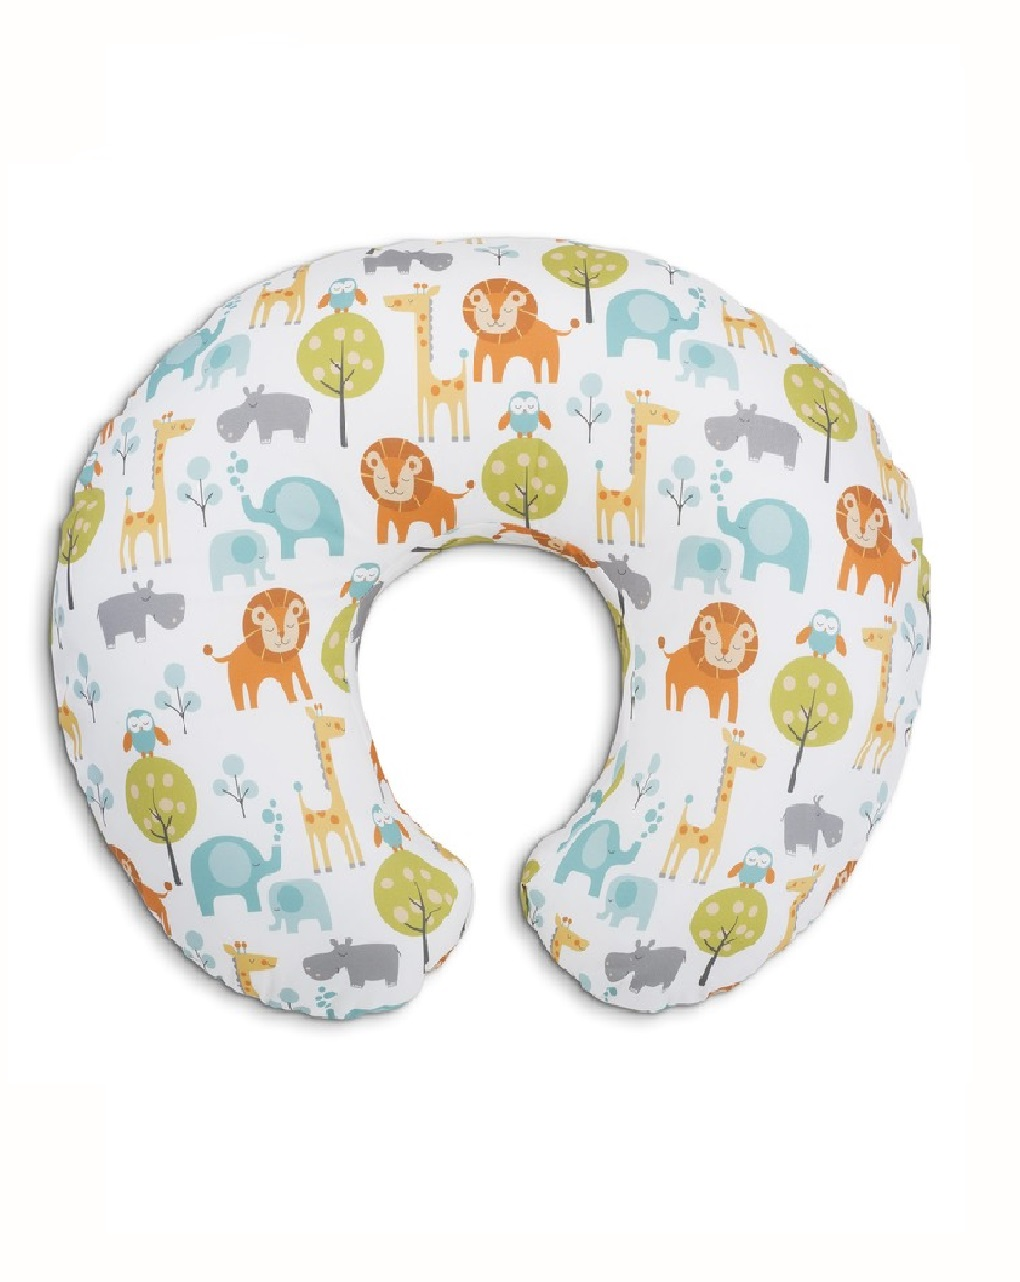 Cuscino allattamento boppy peaceful jungle